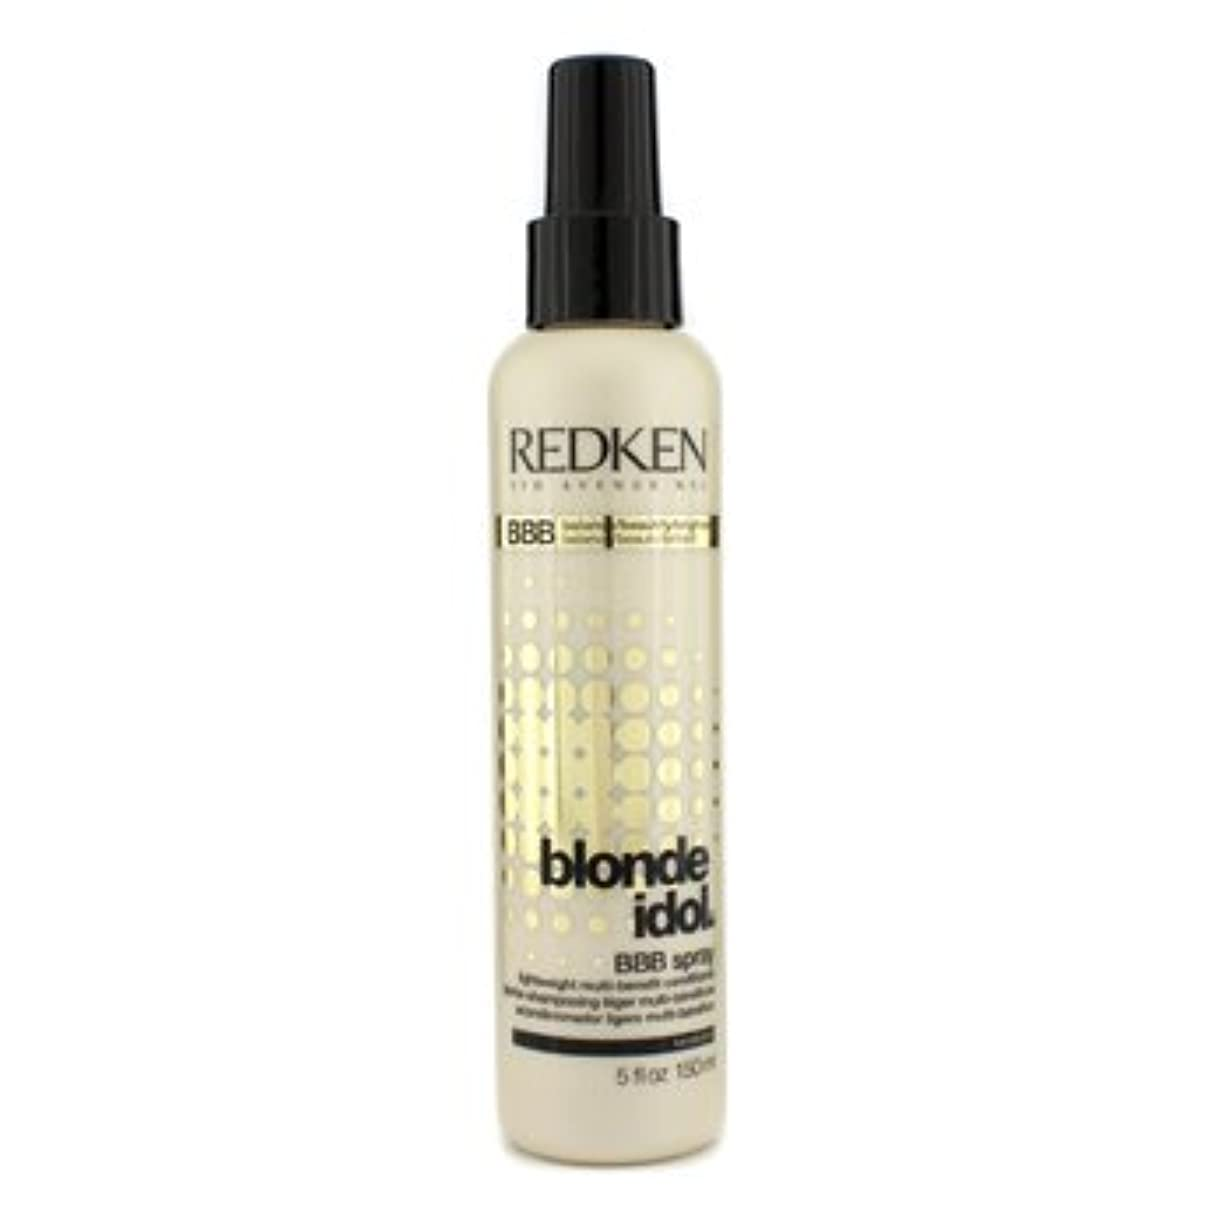 平等時間厳守親密な[Redken] Blonde Idol BBB Spray Lightweight Multi-Benefit Conditioner (For Beautiful Blonde Hair) 150ml/5oz